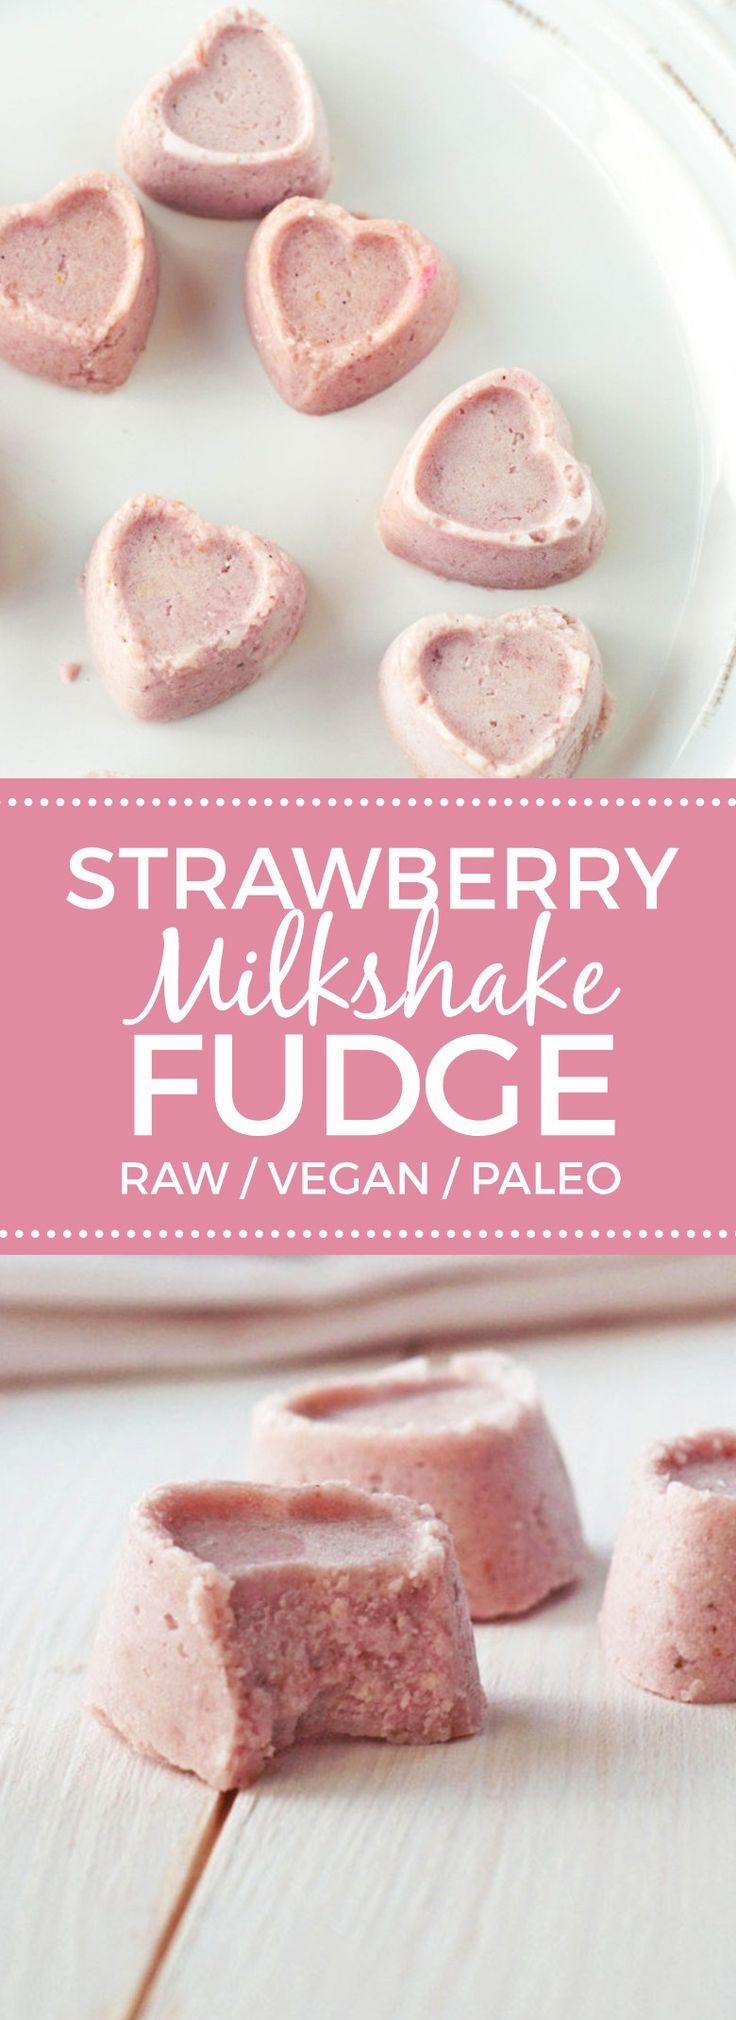 St. Valentine's Day:  Strawberry Milkshake #Fudge.